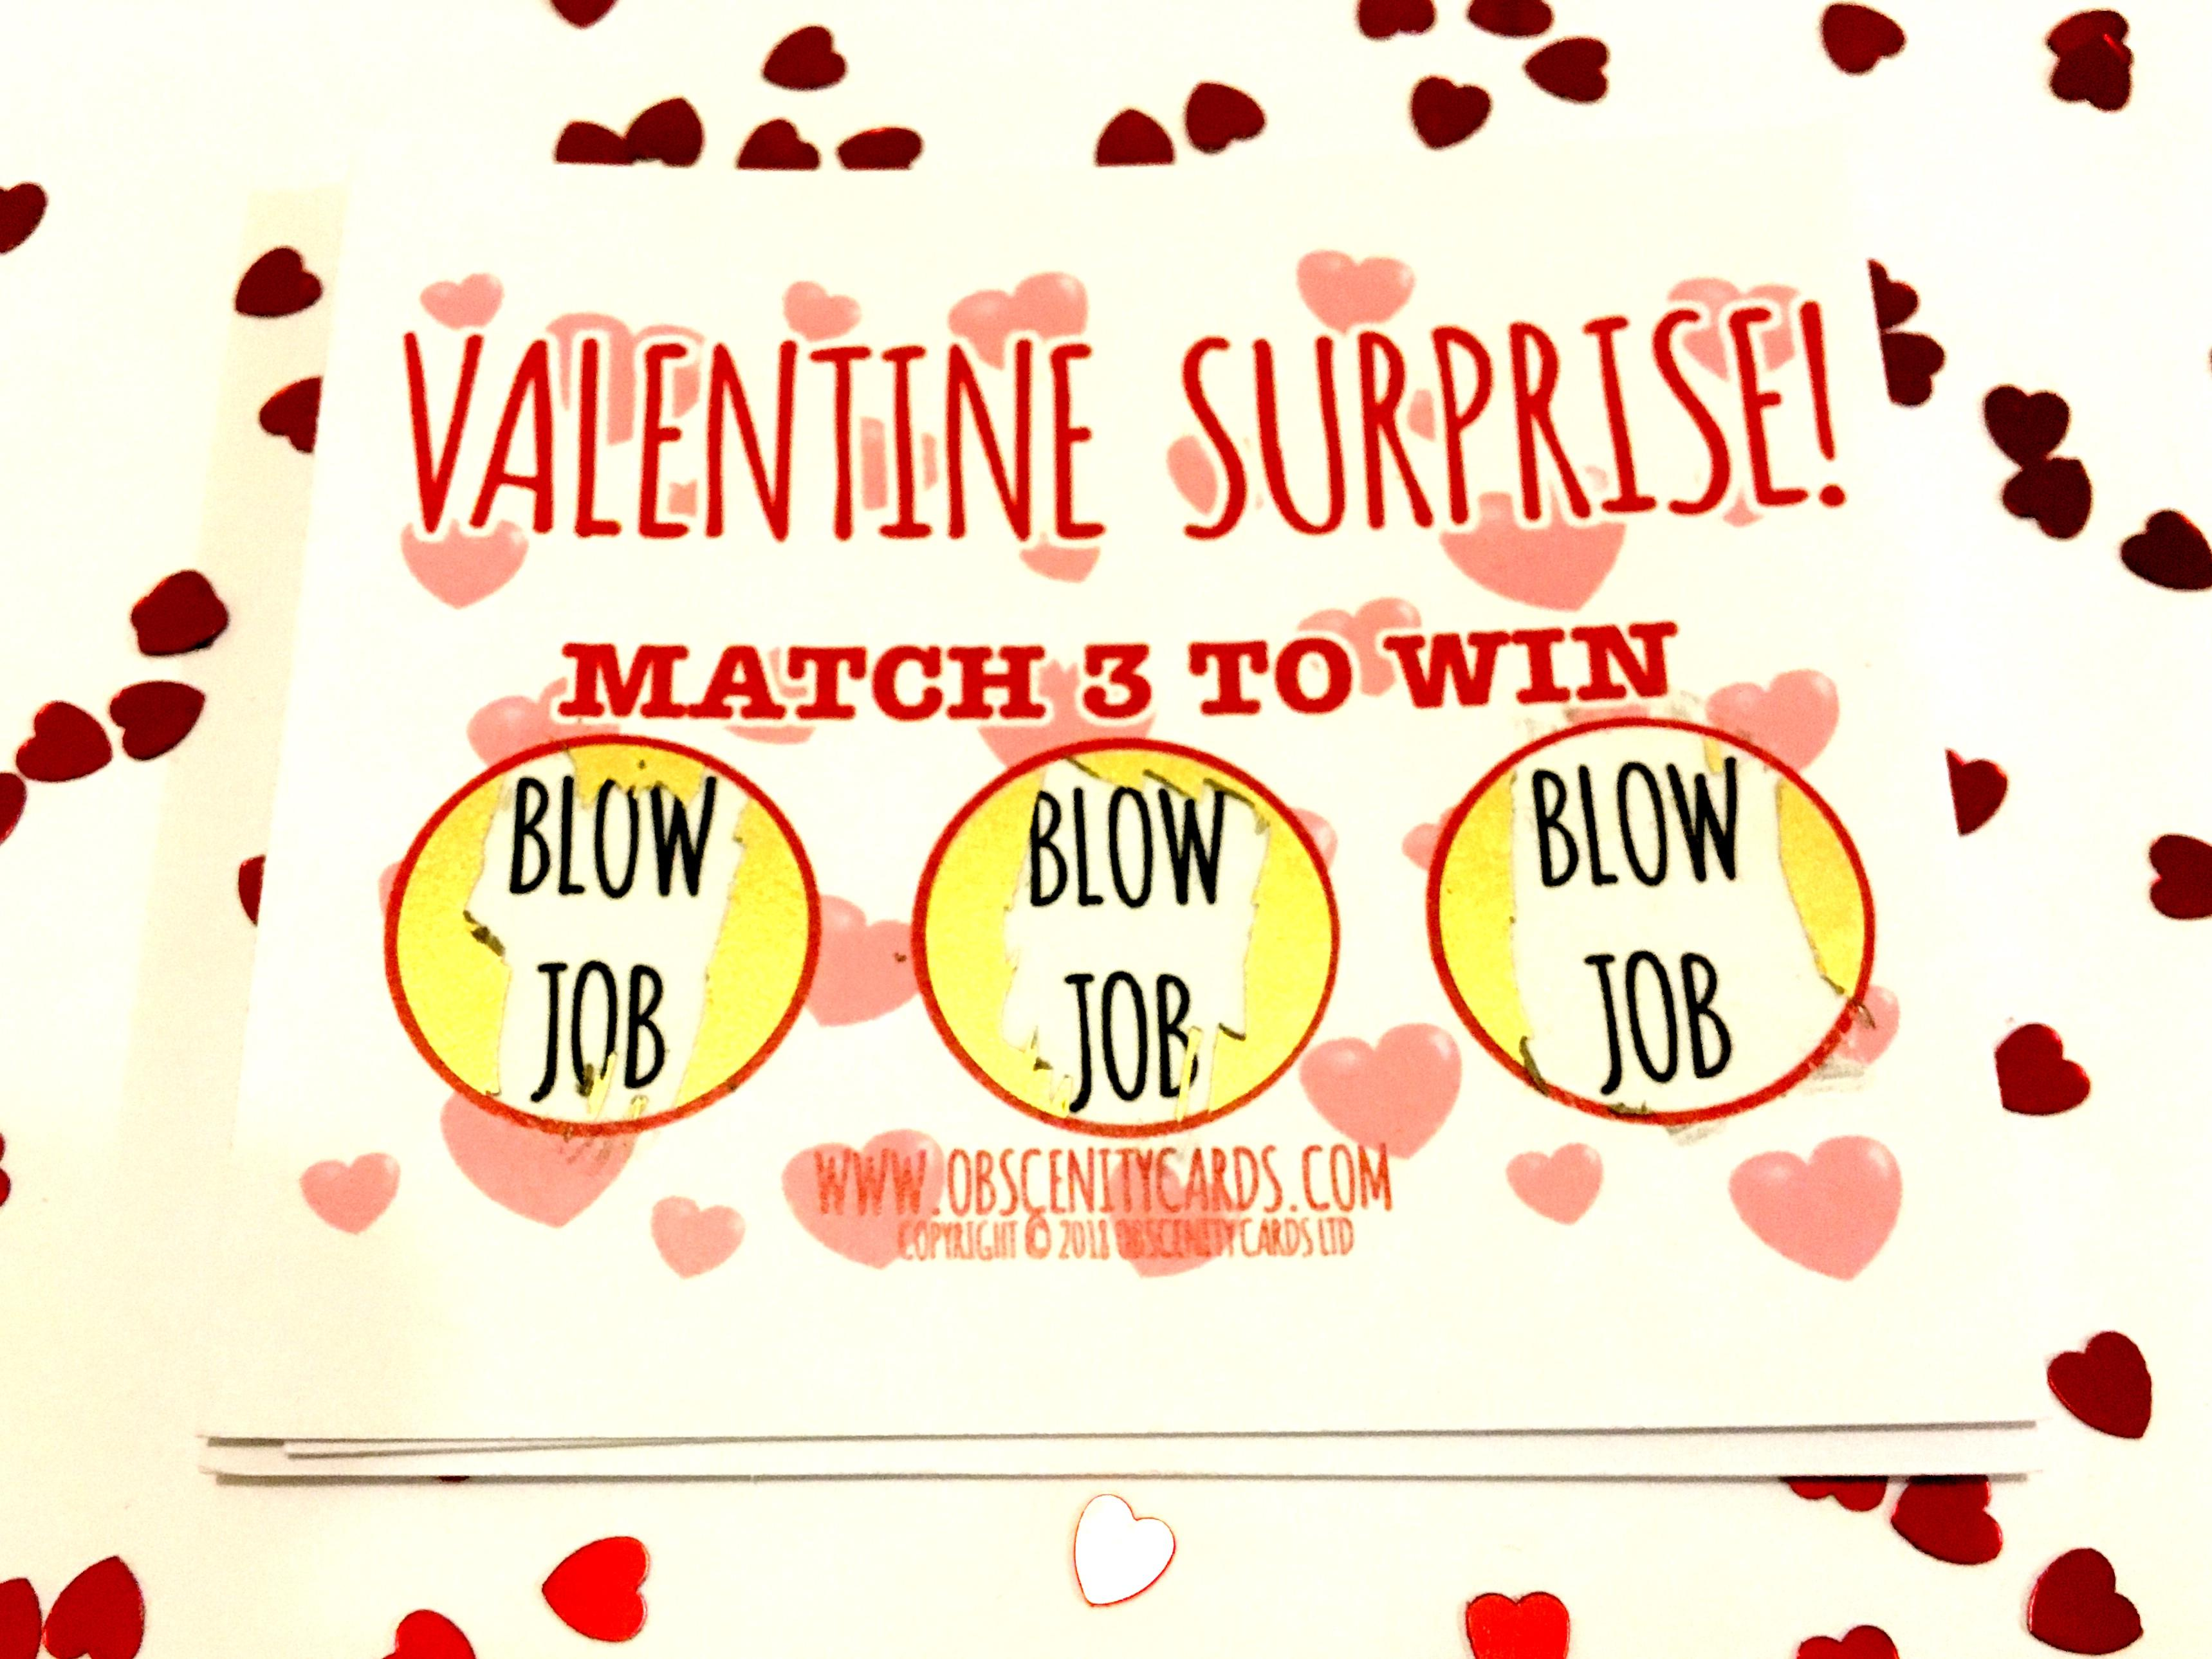 Valentines blow job